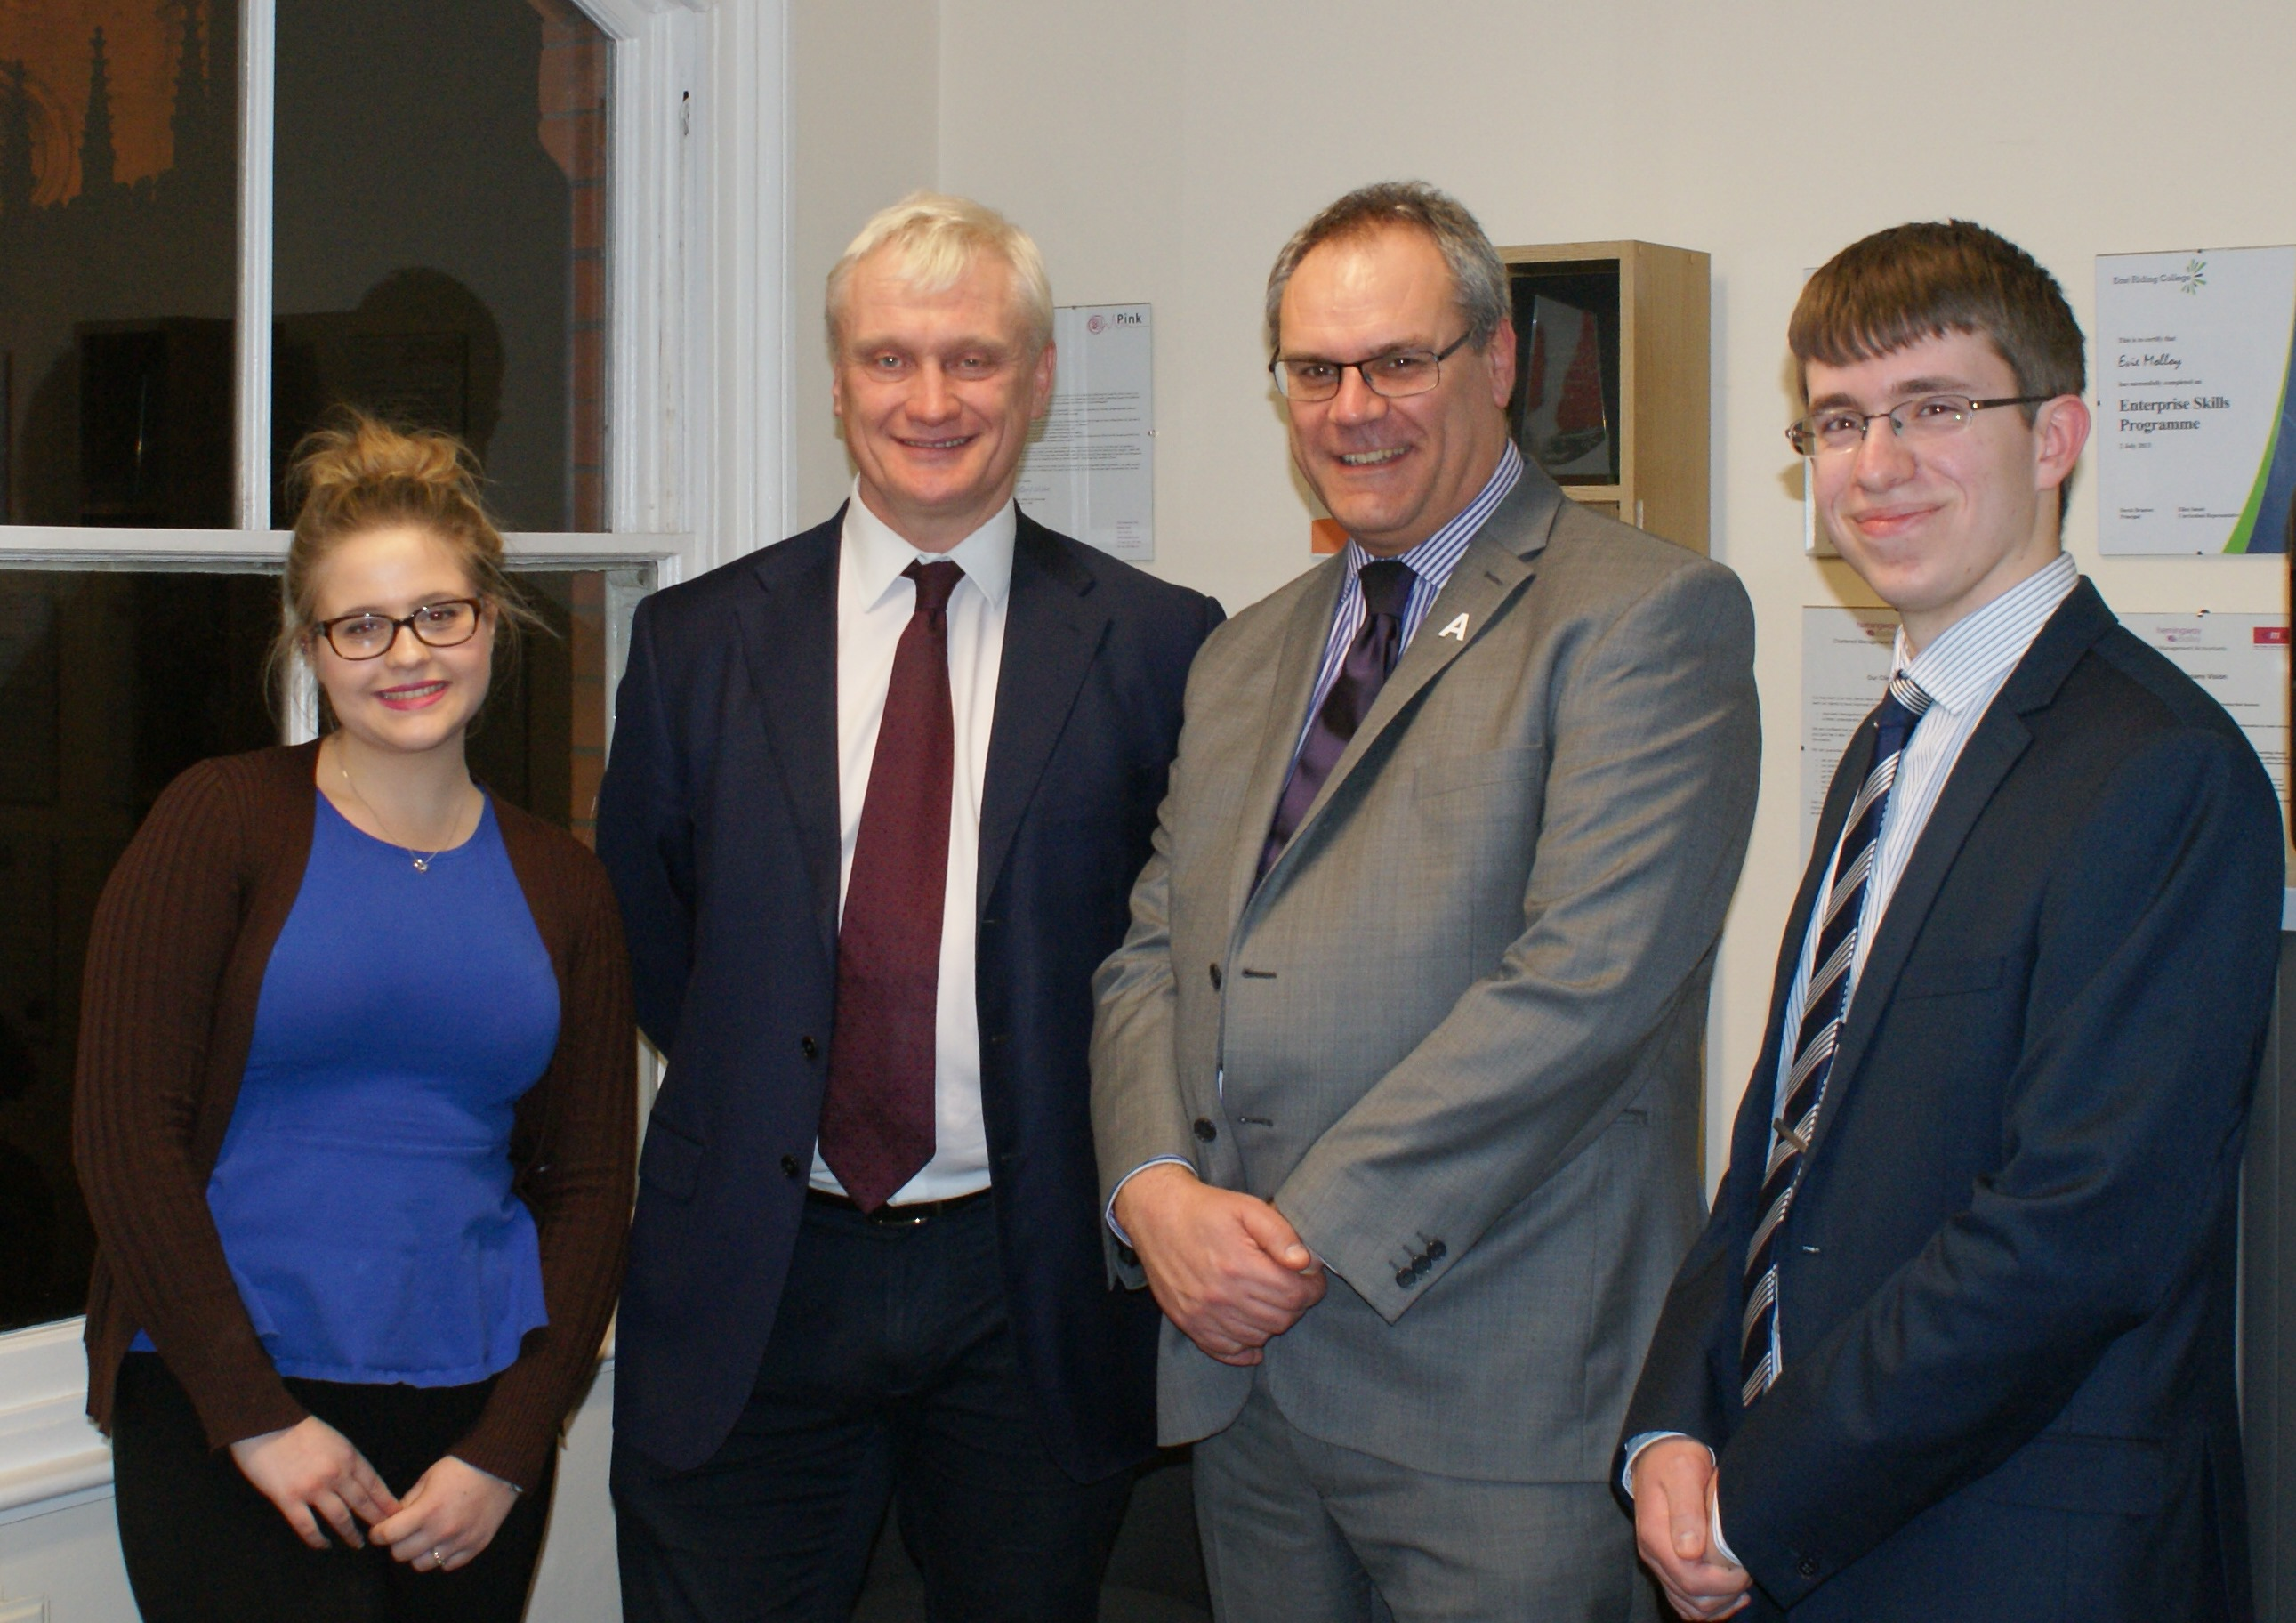 Photo, from left, Apprentice Evie Molloy, Graham Stuart MP, Director Alan Hemingway and Marketing Manager Rhys Plater